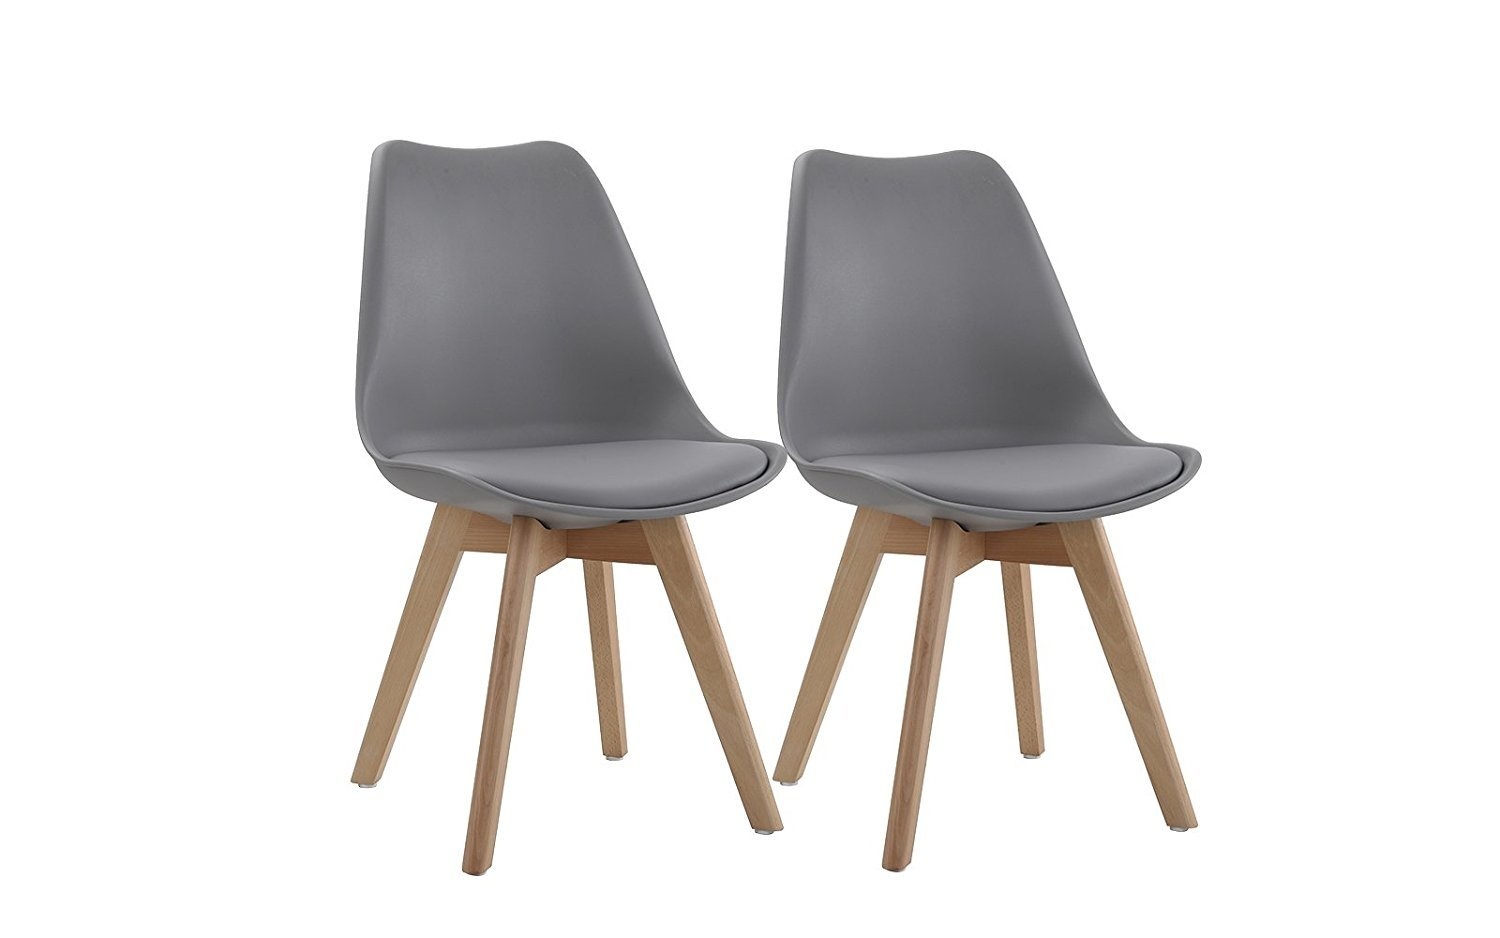 kitchen chairs folding chair used by a bishop wooden set of 2 modern dinning faux leather grey